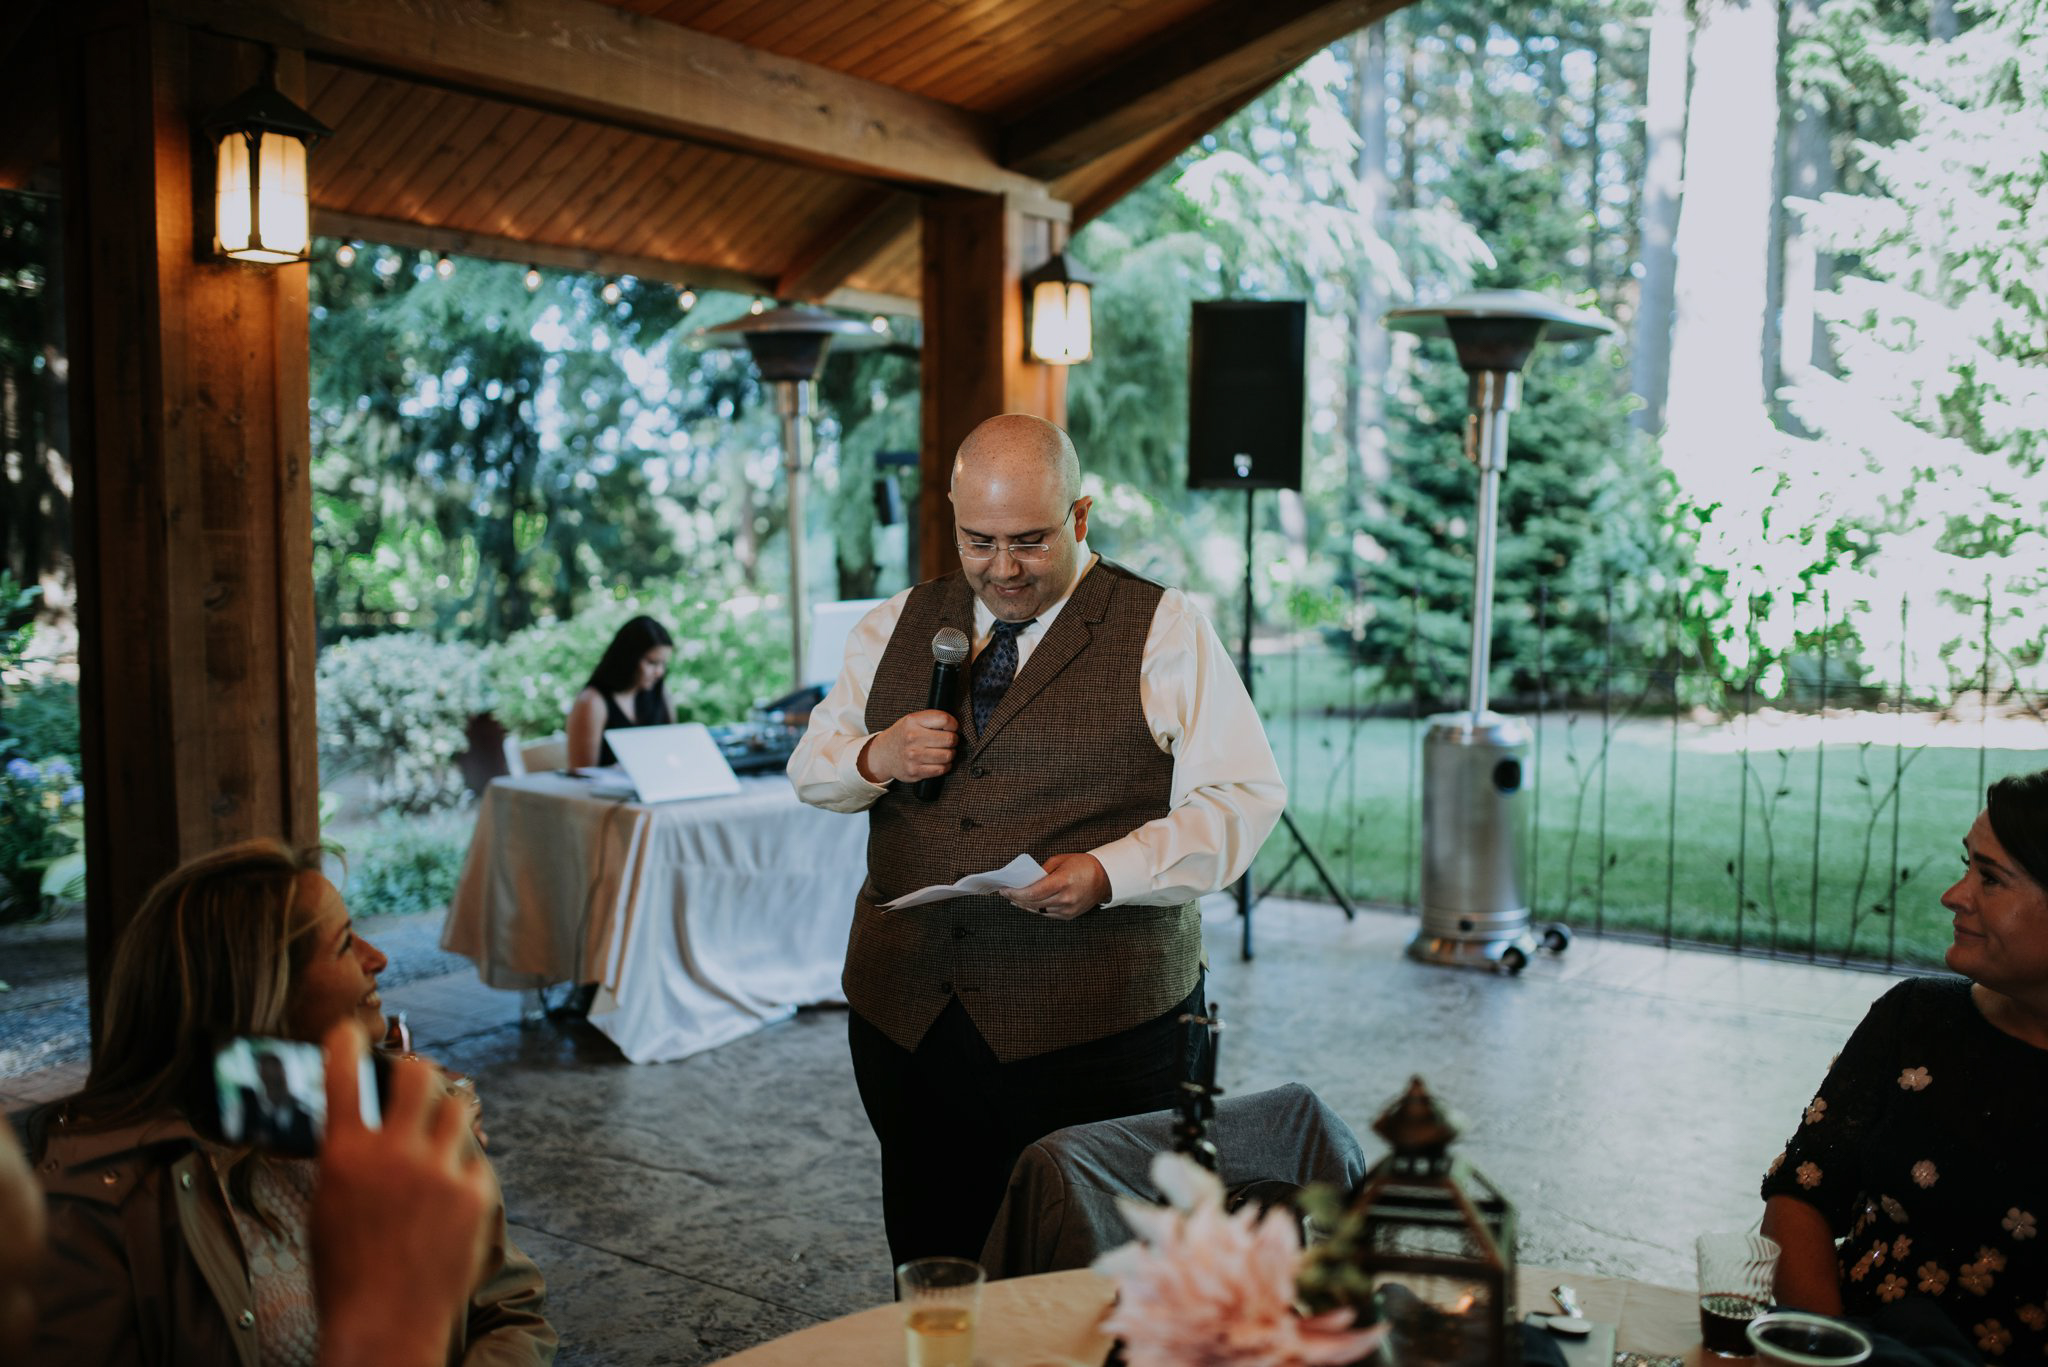 evergreen-gardens-bellingham-wedding-seattle-photographer-caitlyn-nikula-93.jpg